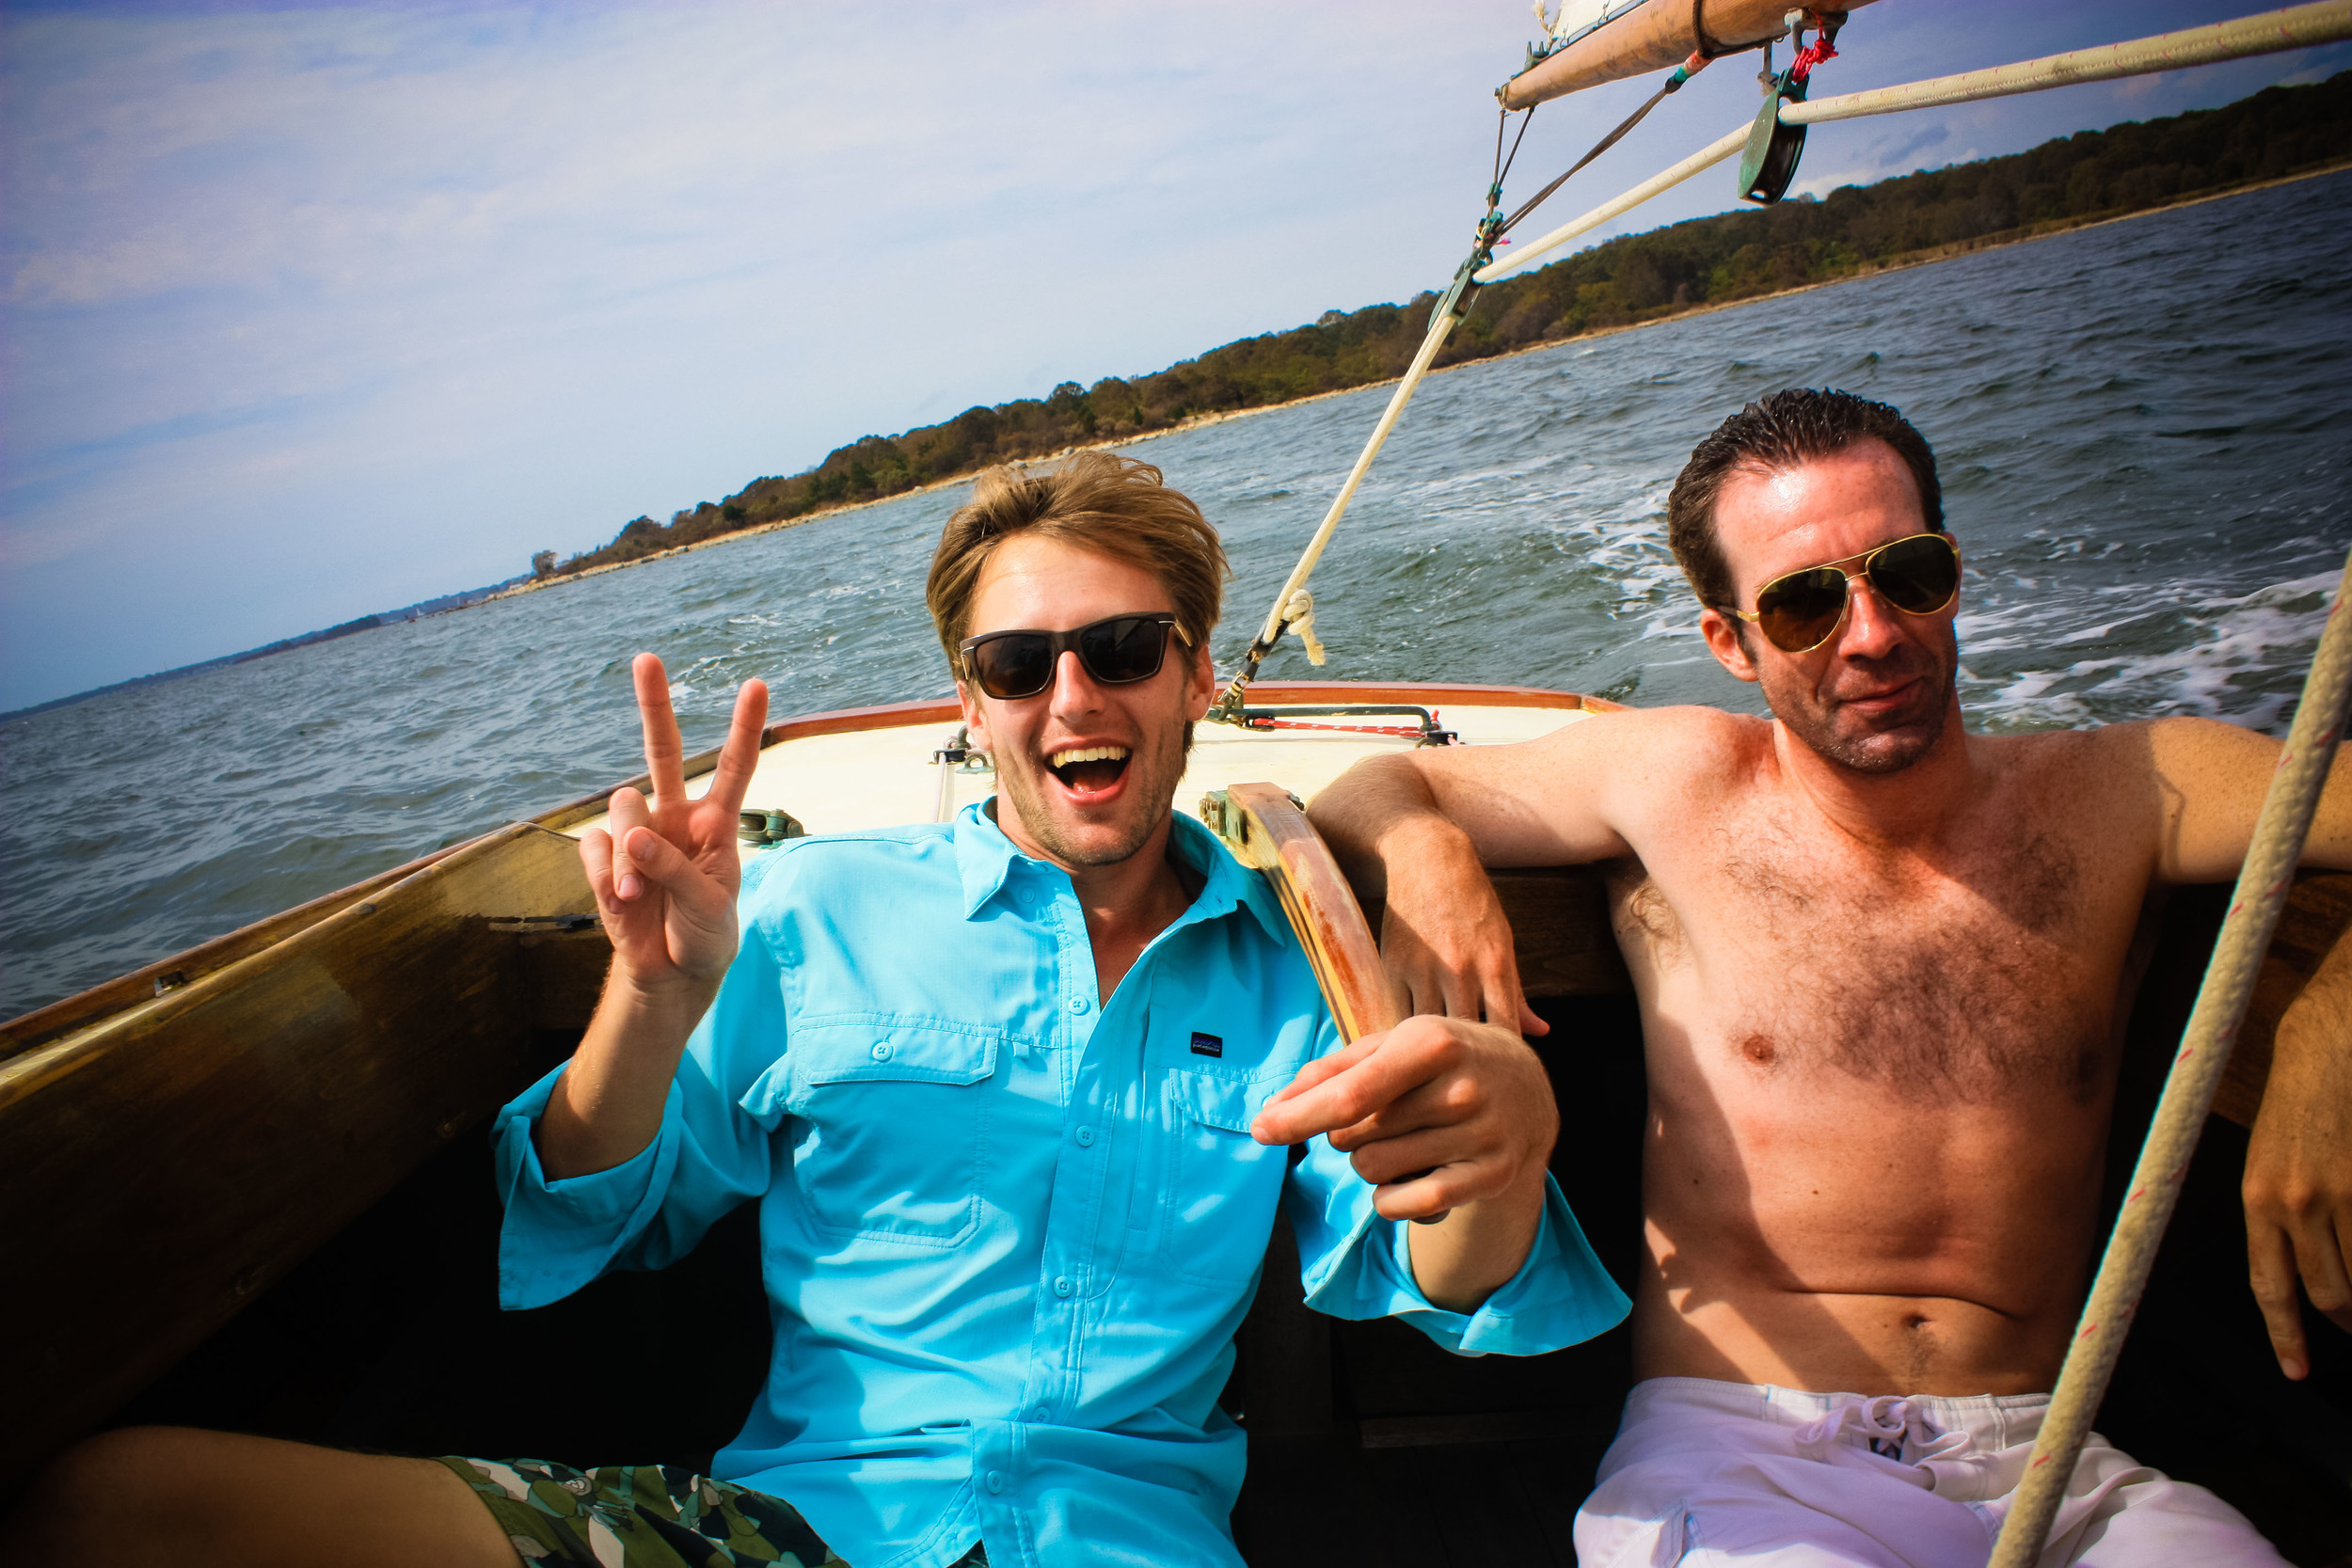 Jim and Jeff in the Alue Optics Six and Eight Sunglasses sailing